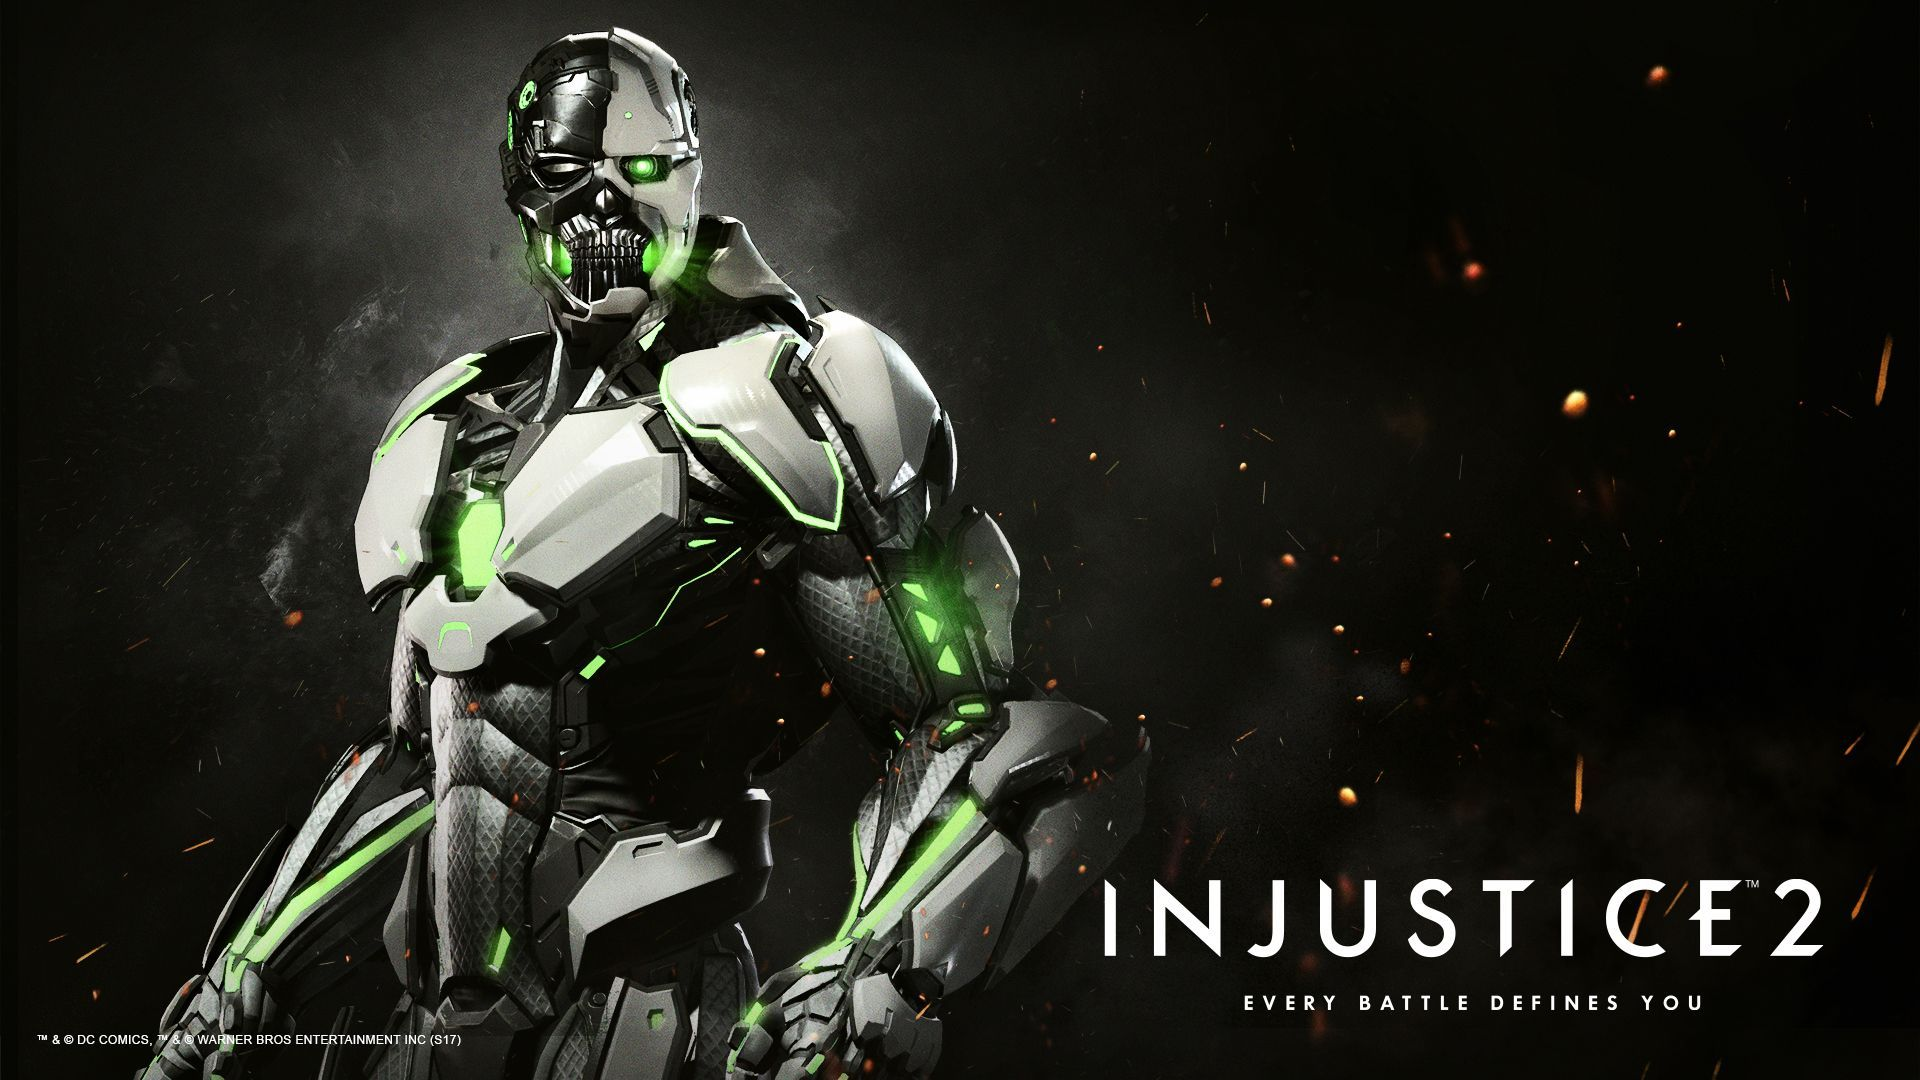 Pin About Injustice 2 And Injustice 2 Game On Injustice 2